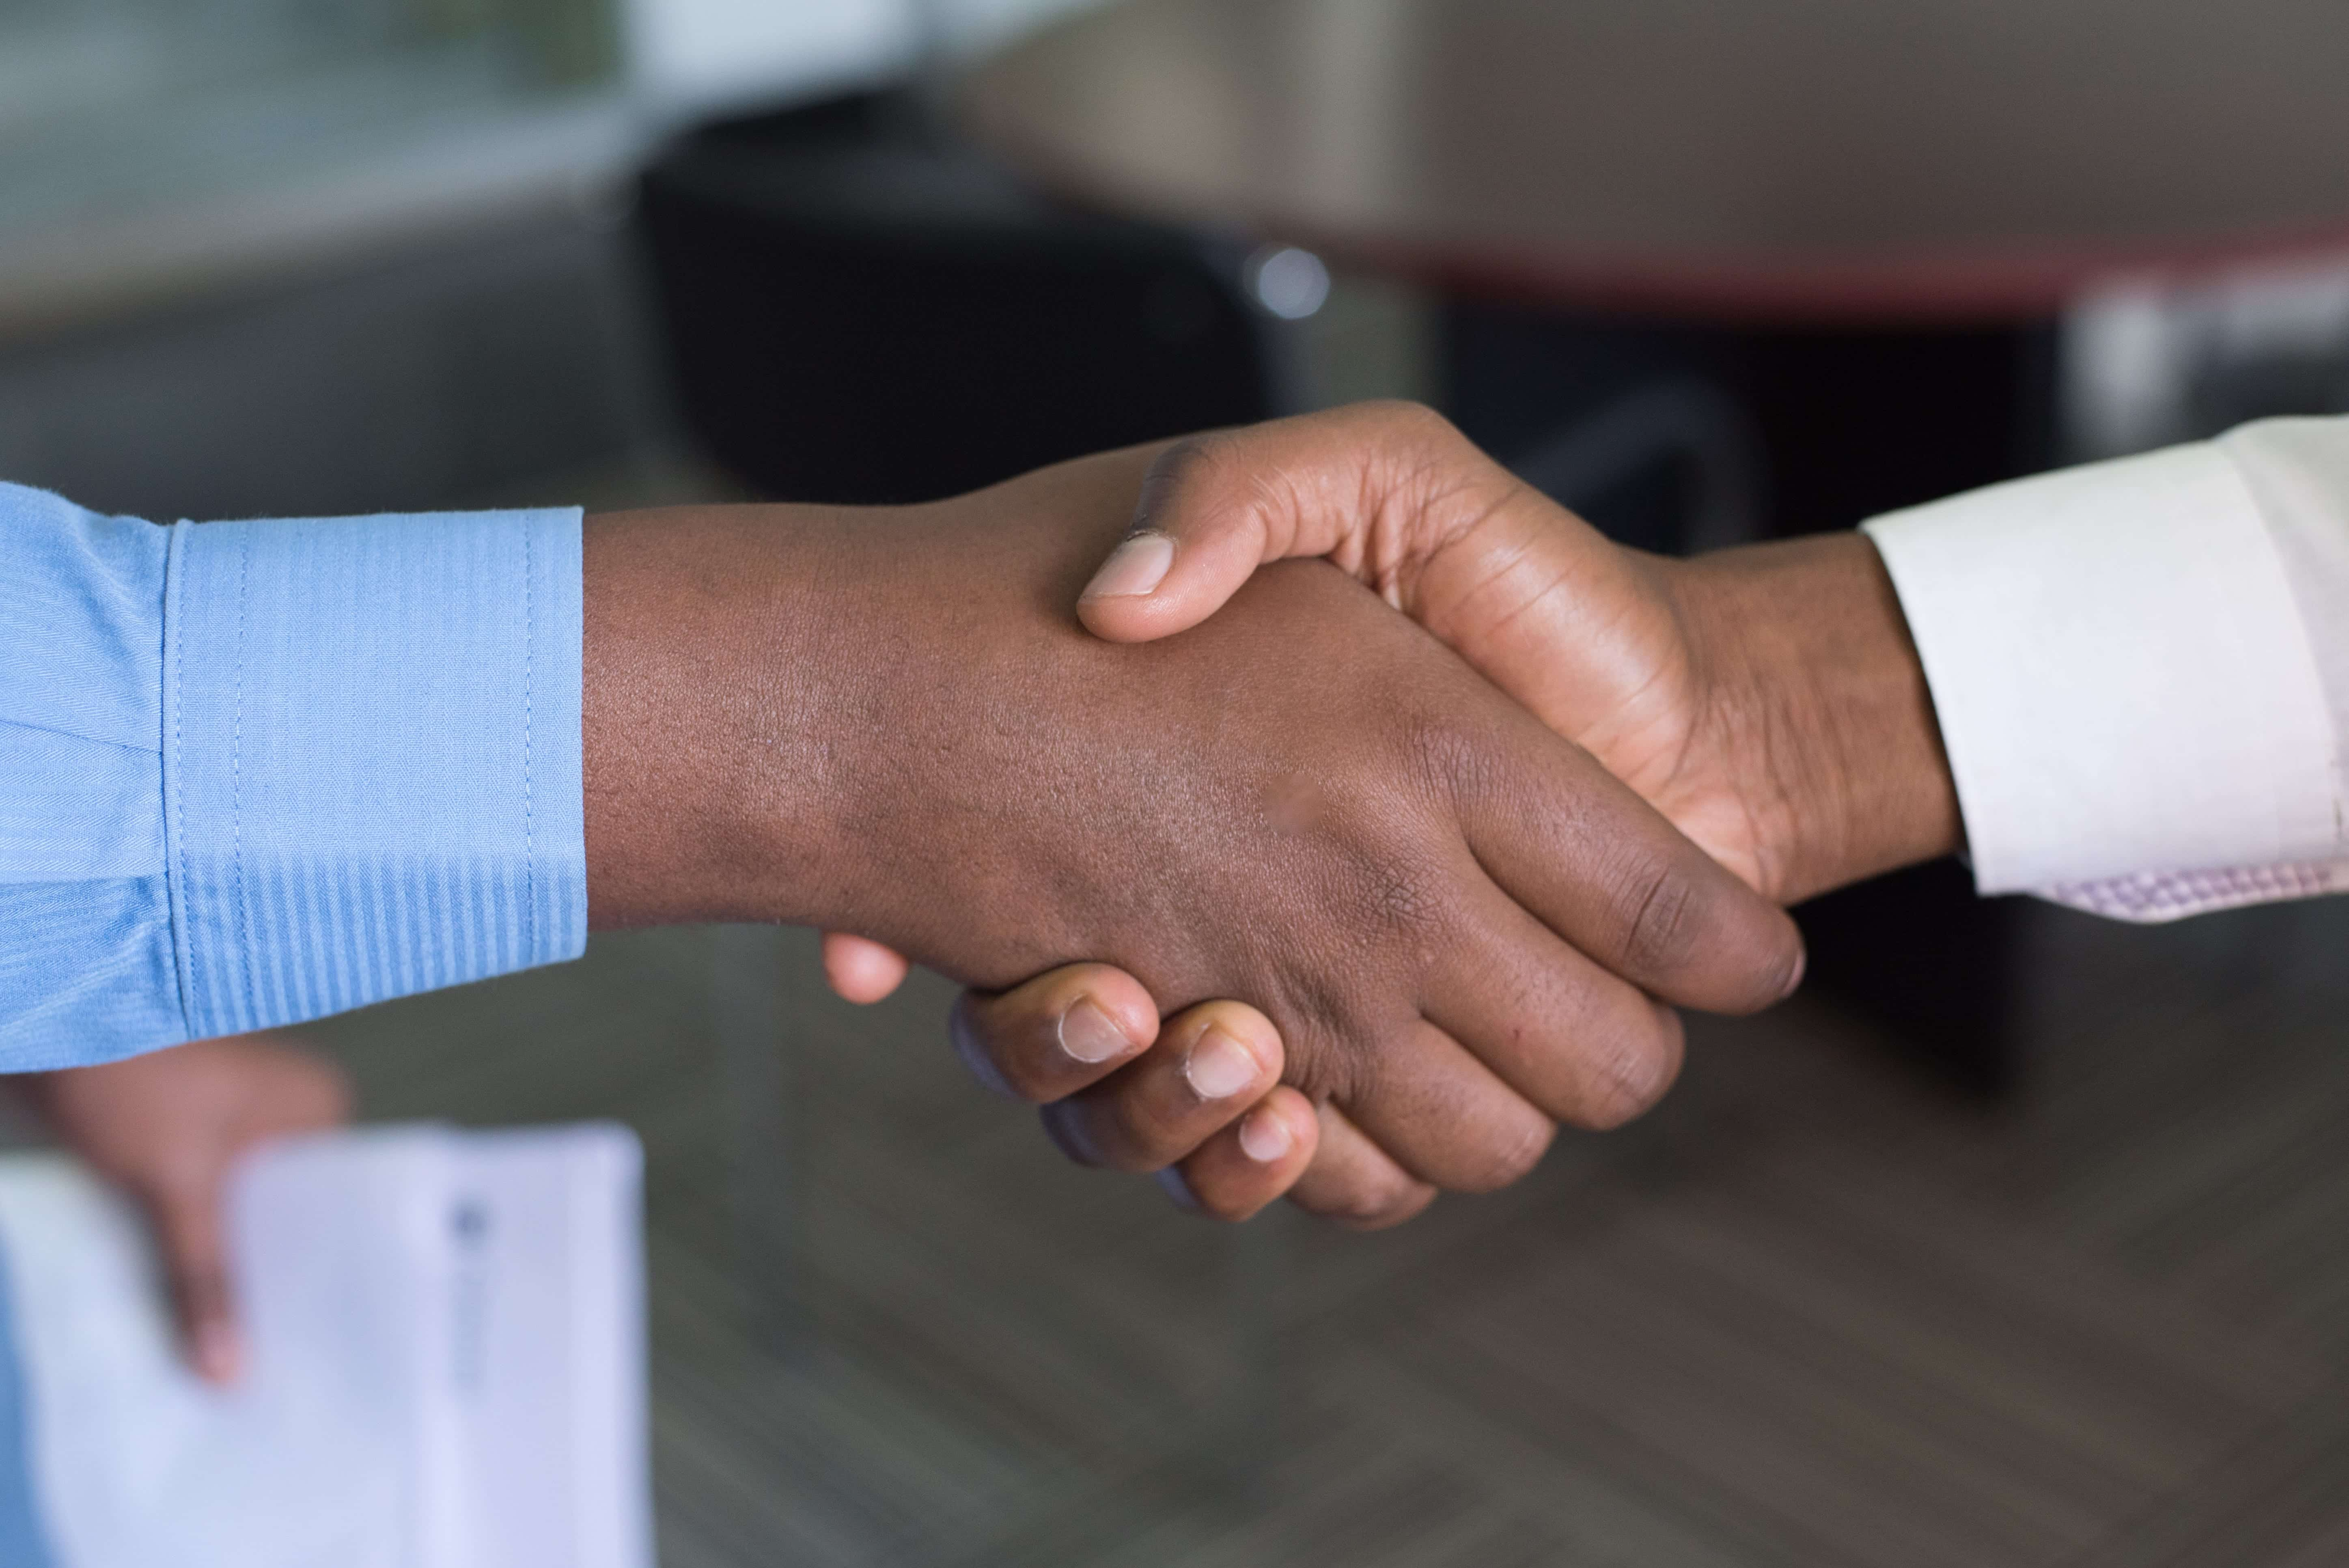 Two men shaking hands; image by Cytonn Photography, via Unsplash.com.